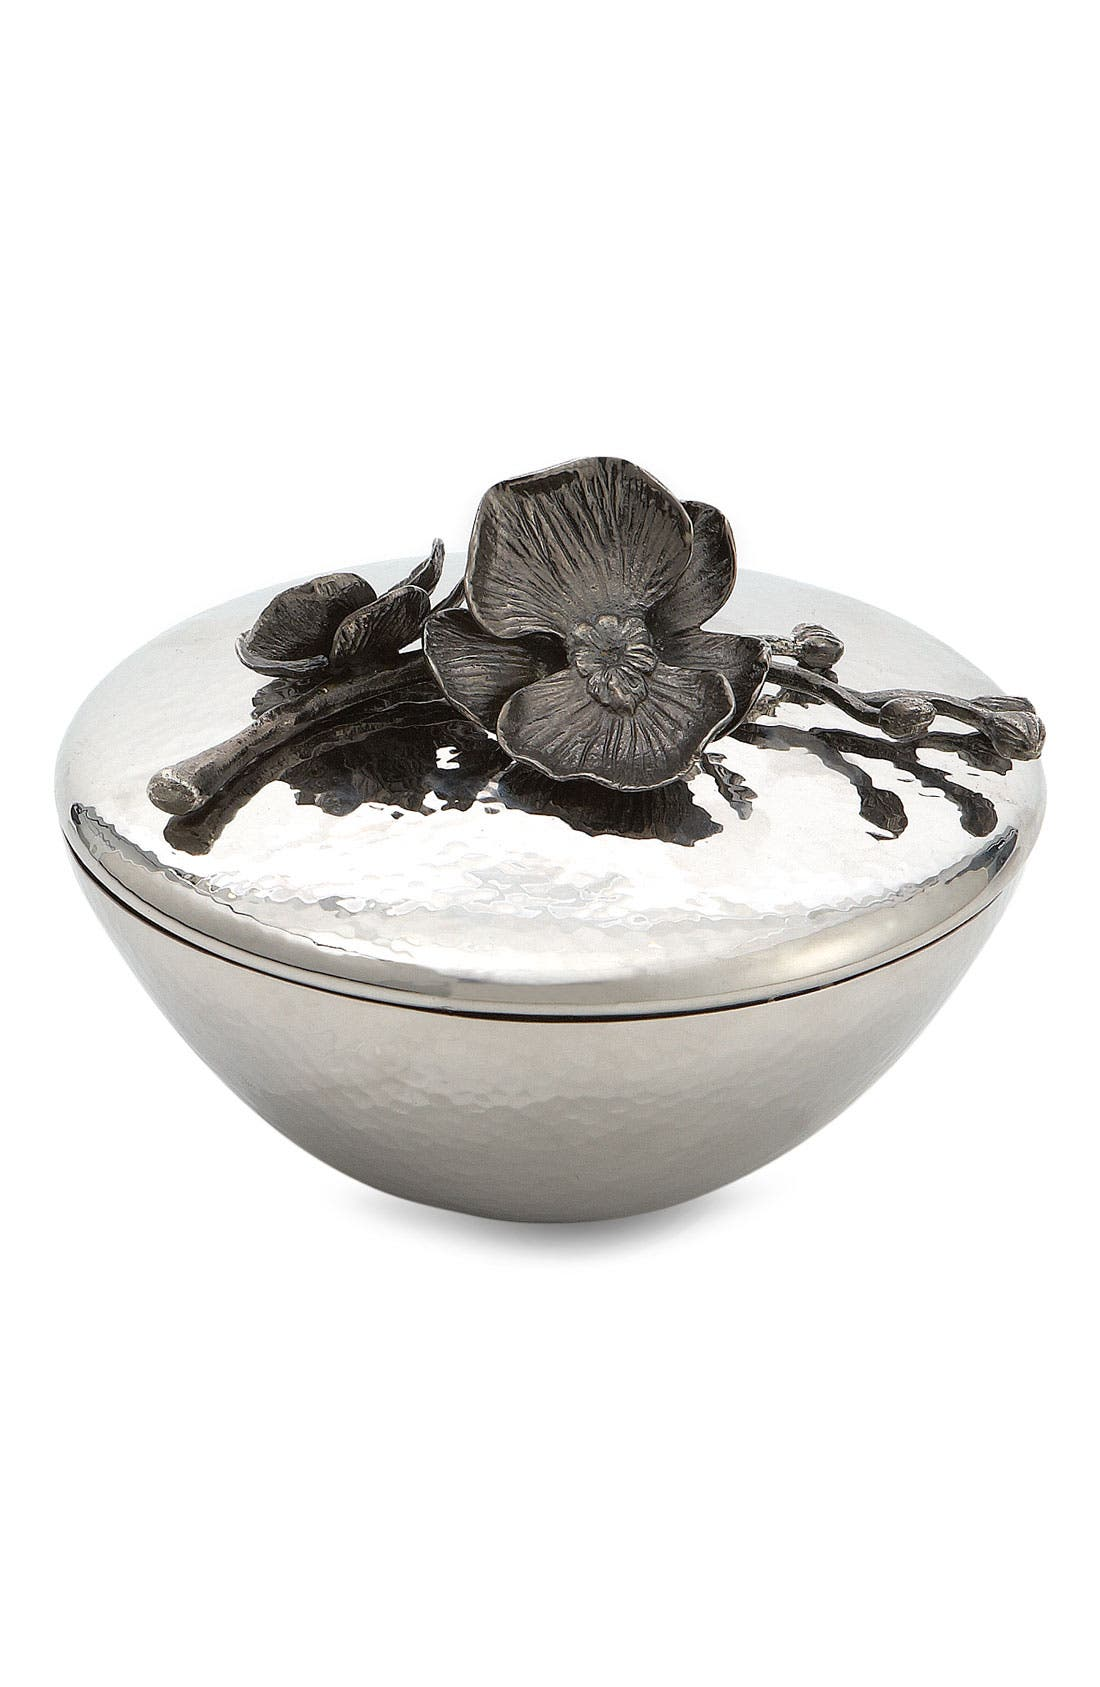 Alternate Image 1 Selected - Michael Aram 'Black Orchid' Candy Dish